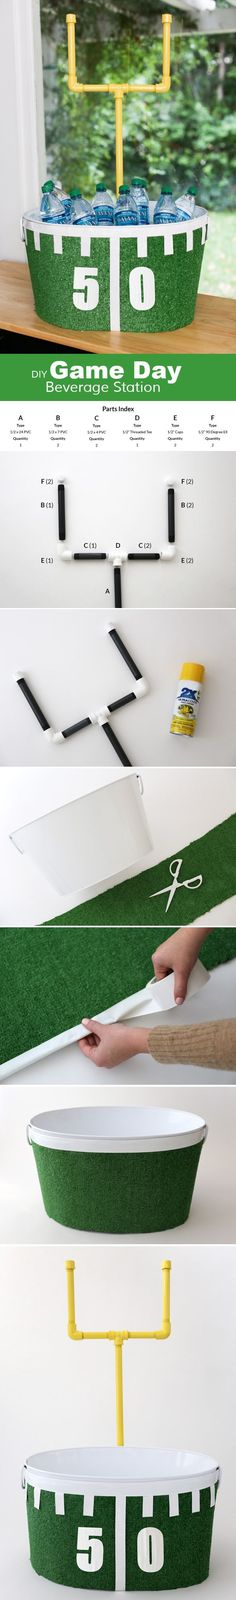 This fun DIY project is perfect for football season! Make this Football beverage tub for the big game this weekend!